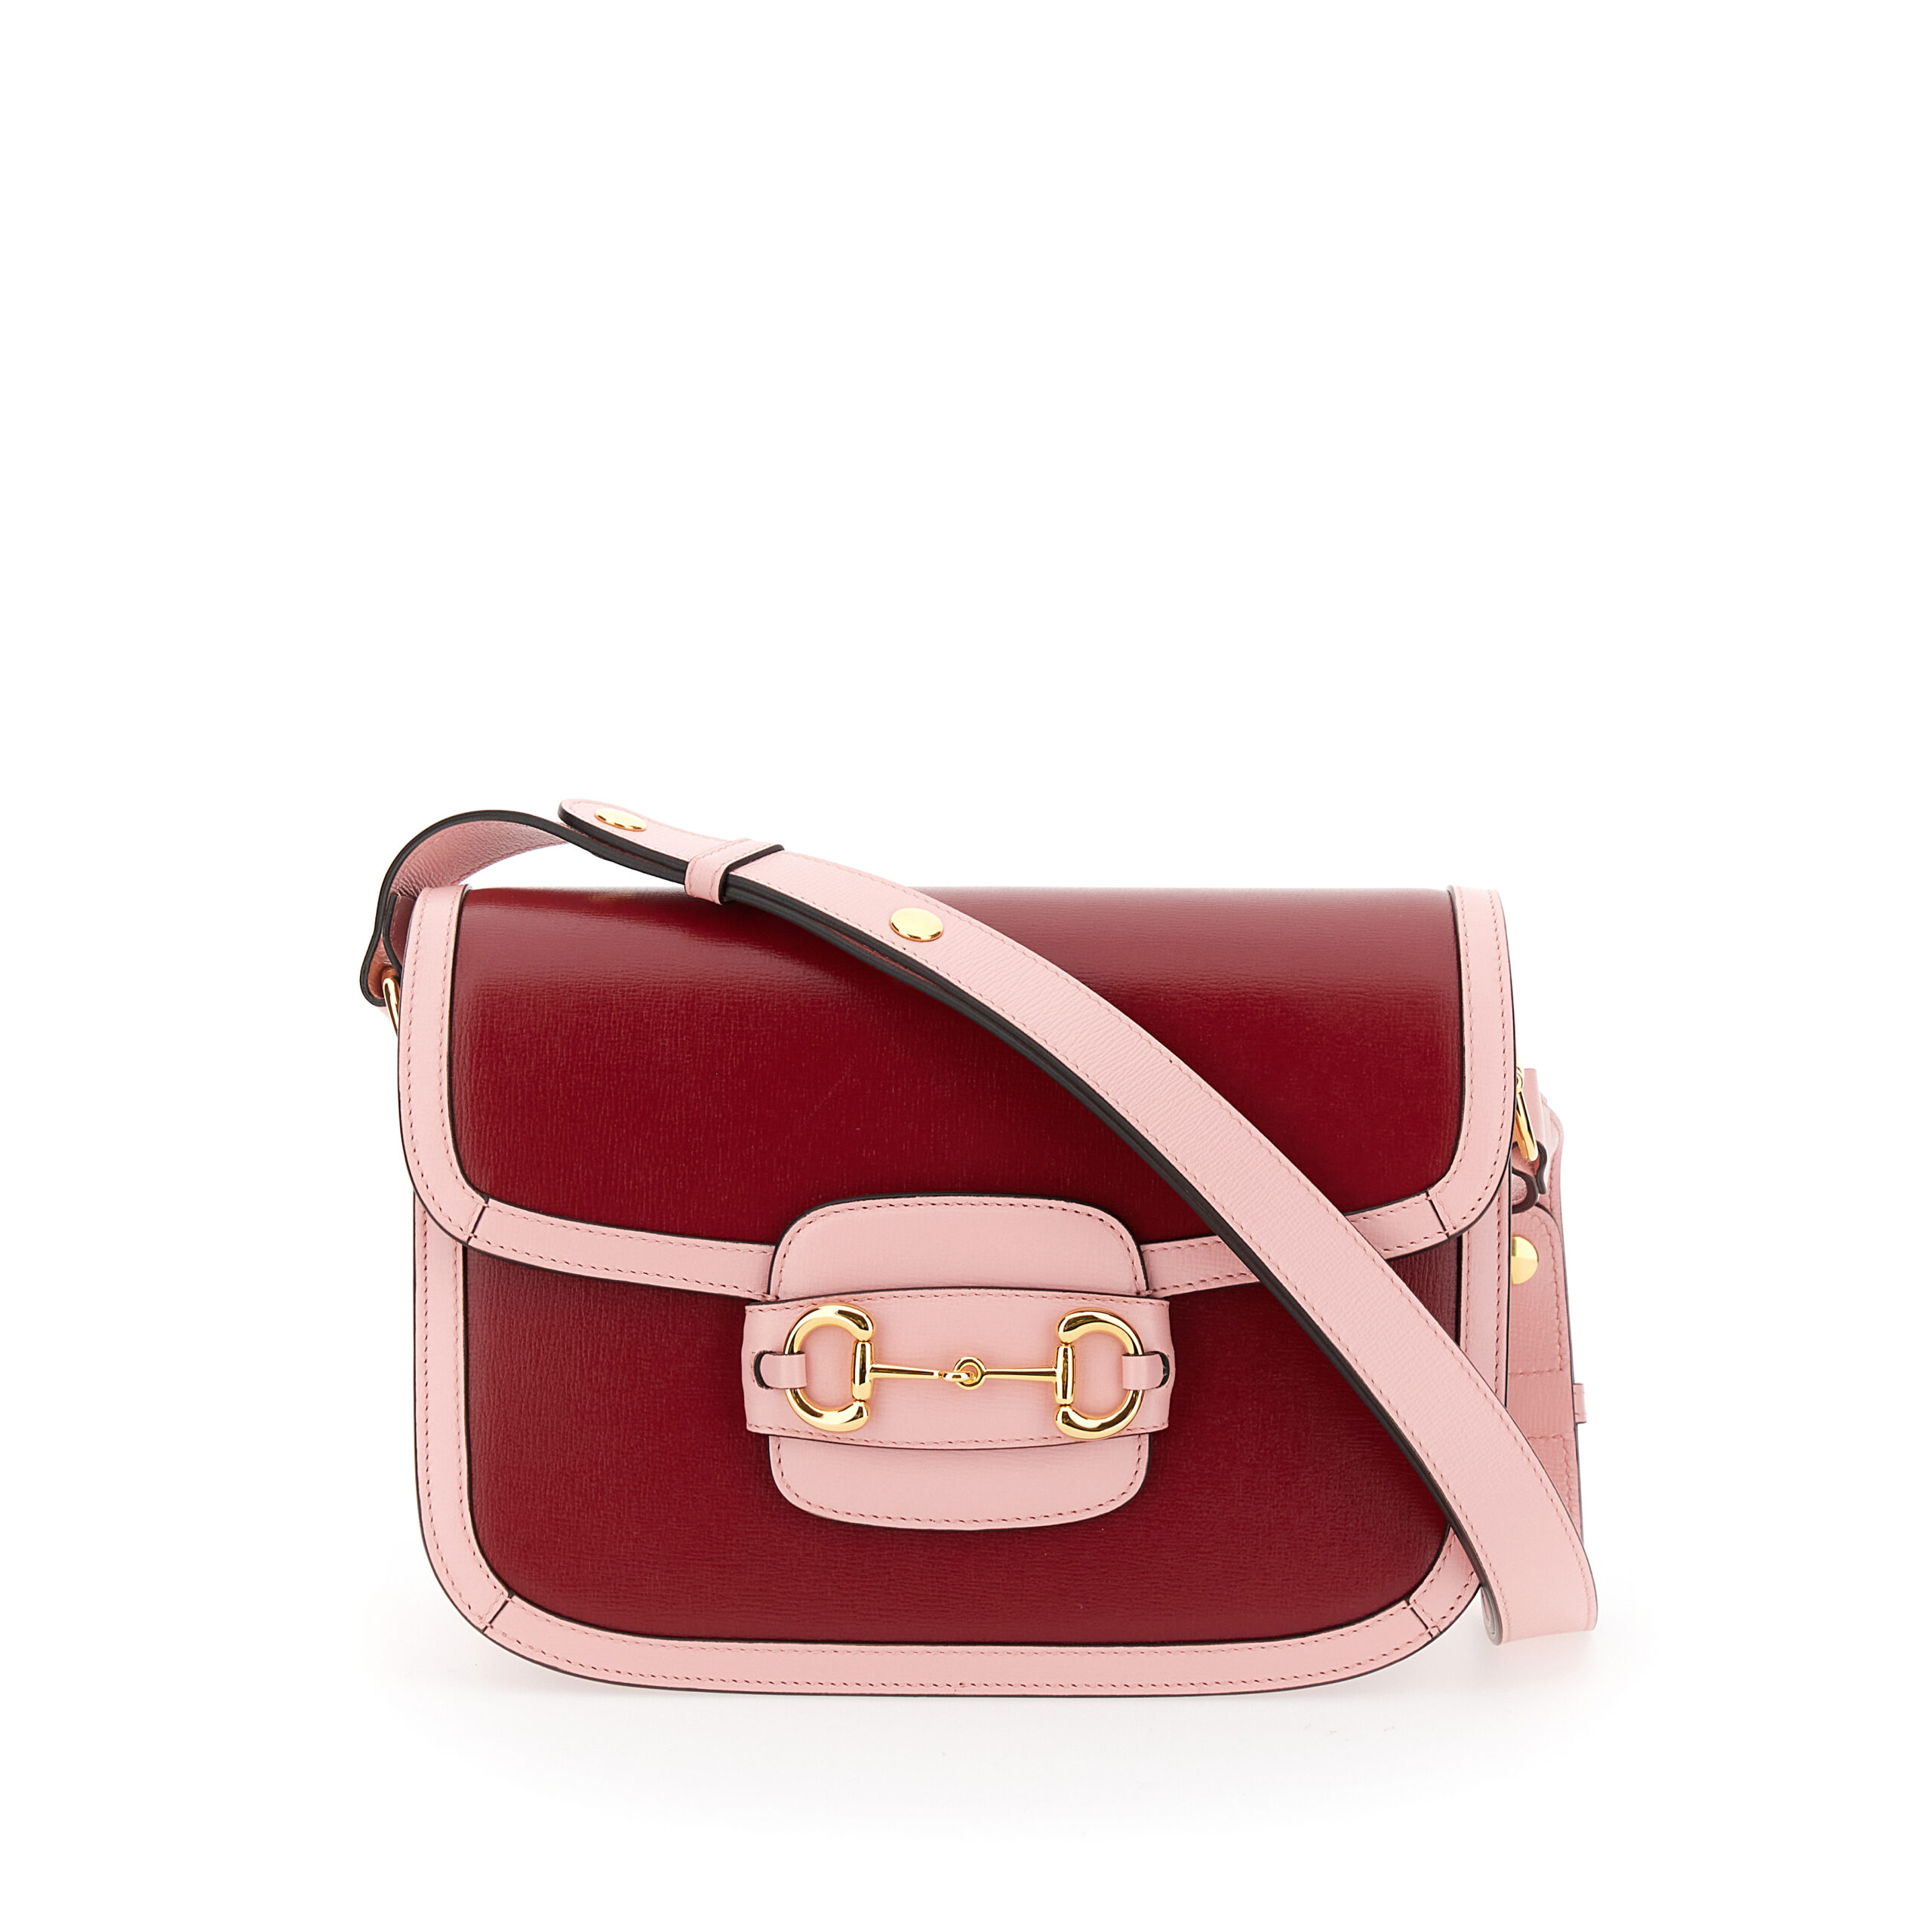 Beloved Handbag by Gucci via Lauren Gnazzo (Gnazzo Group) for use by 360 Magazine